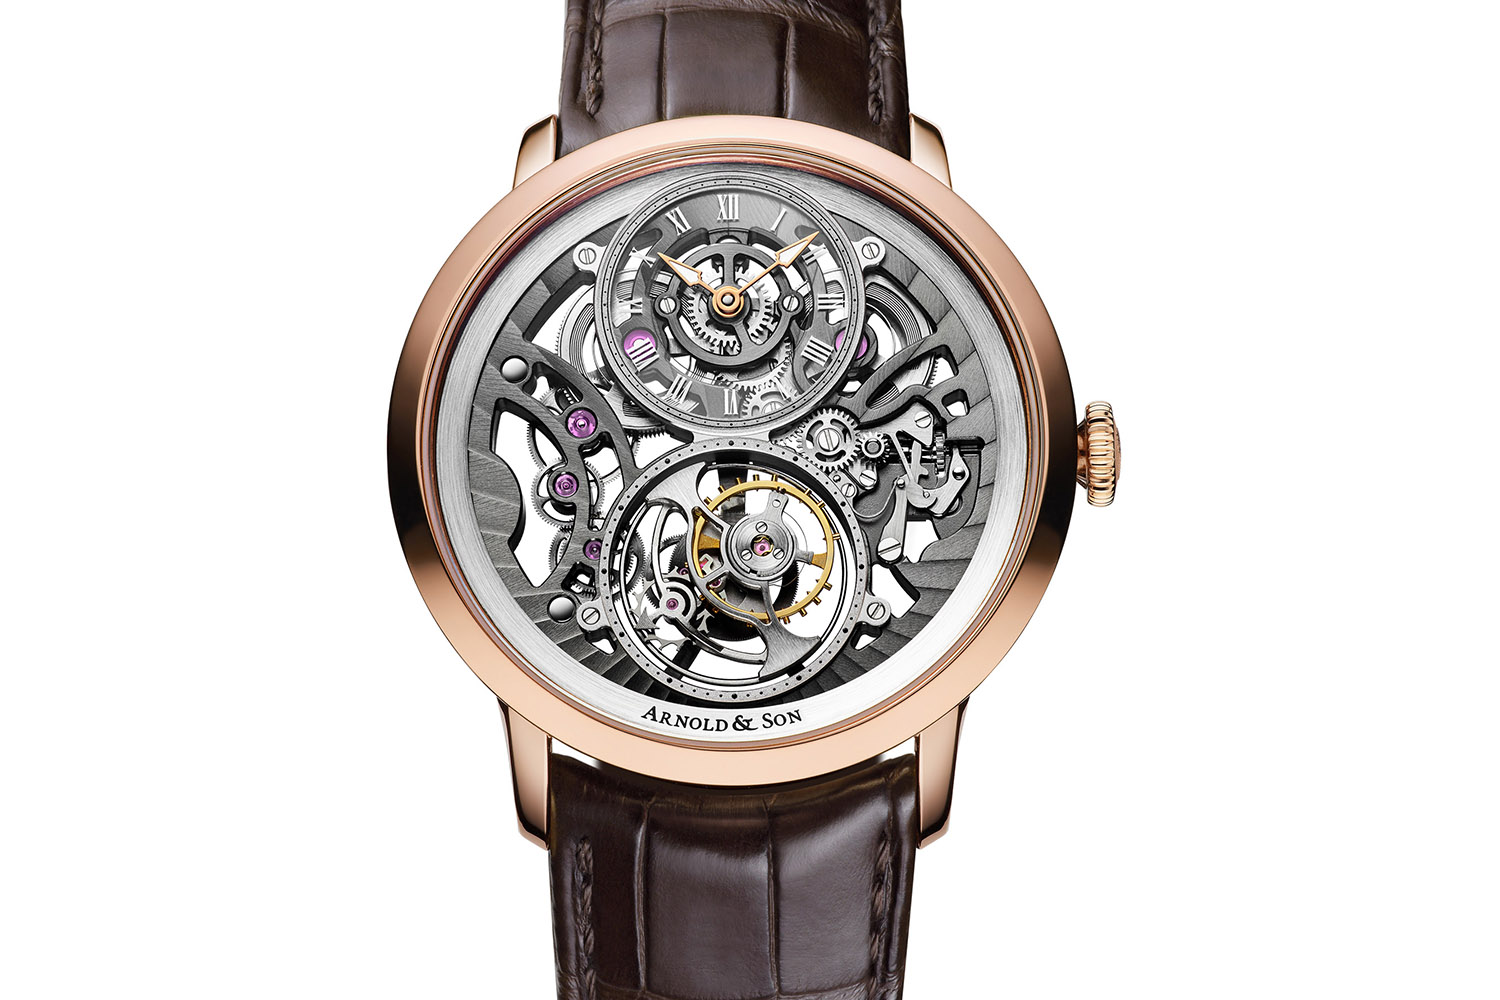 Arnold and Son UTTE Skeleton - world's thinnest tourbillon skeleton